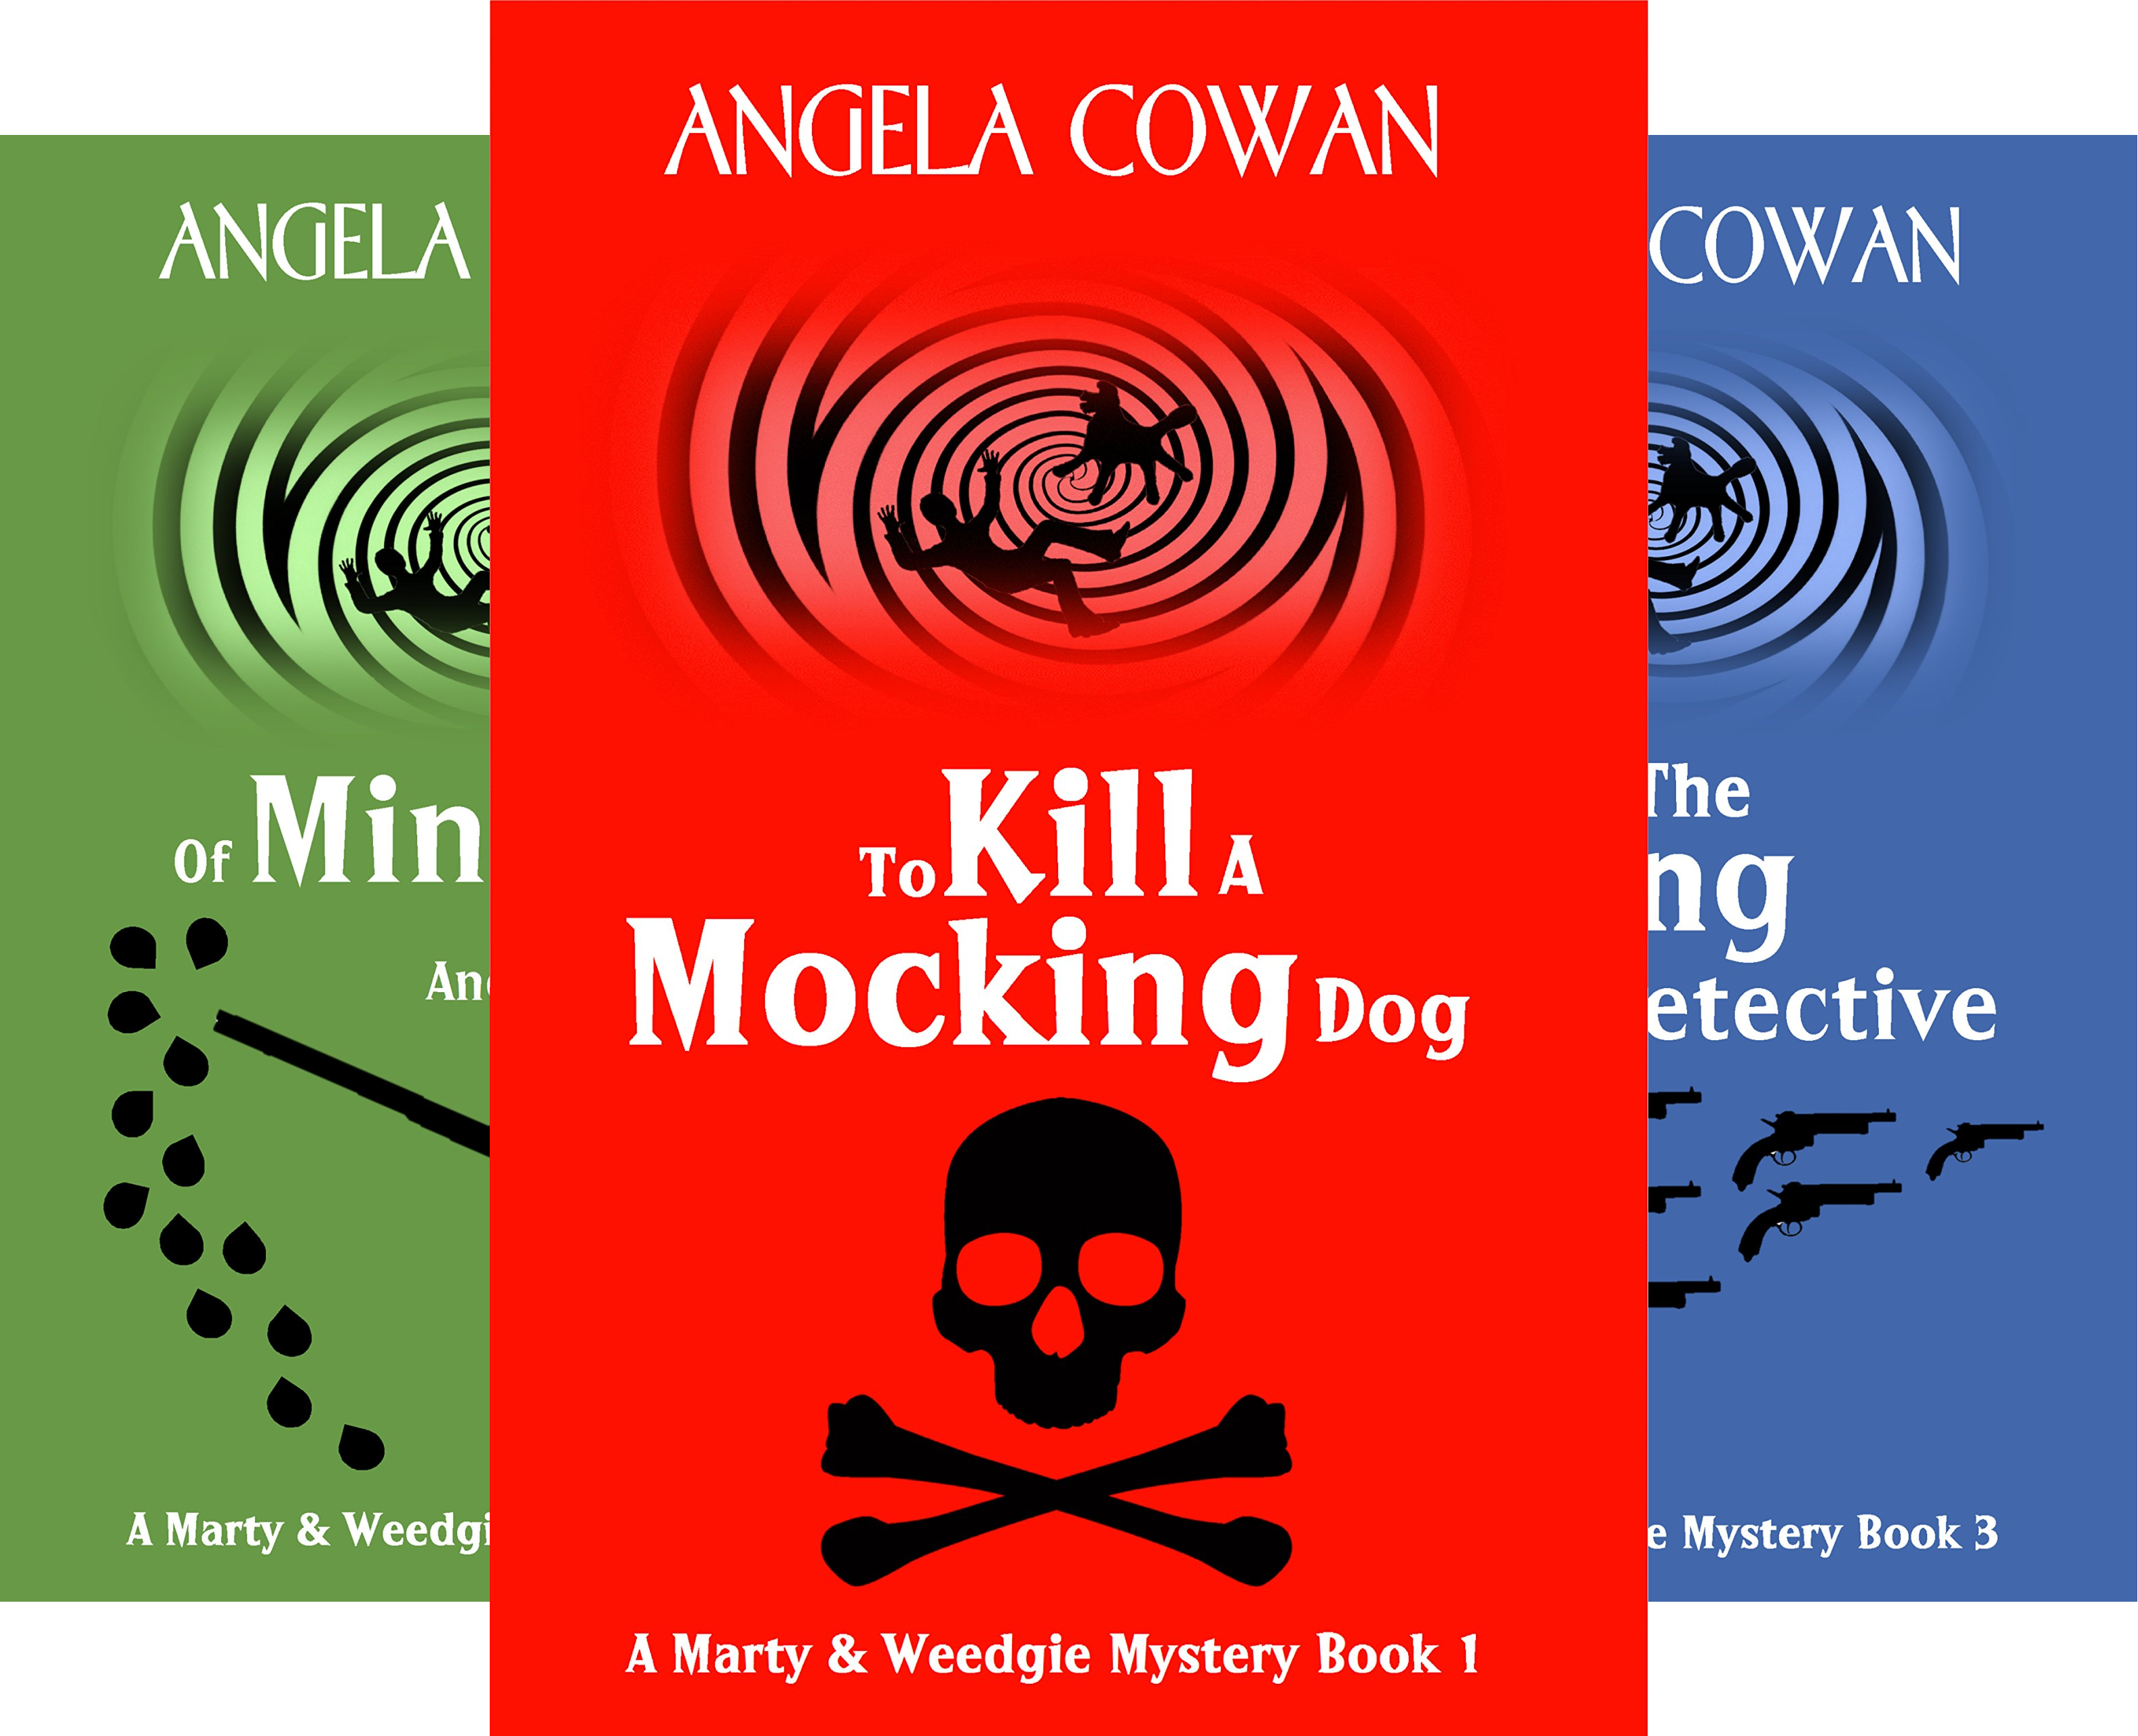 A Marty & Weedgie Novel (7 Book Series)